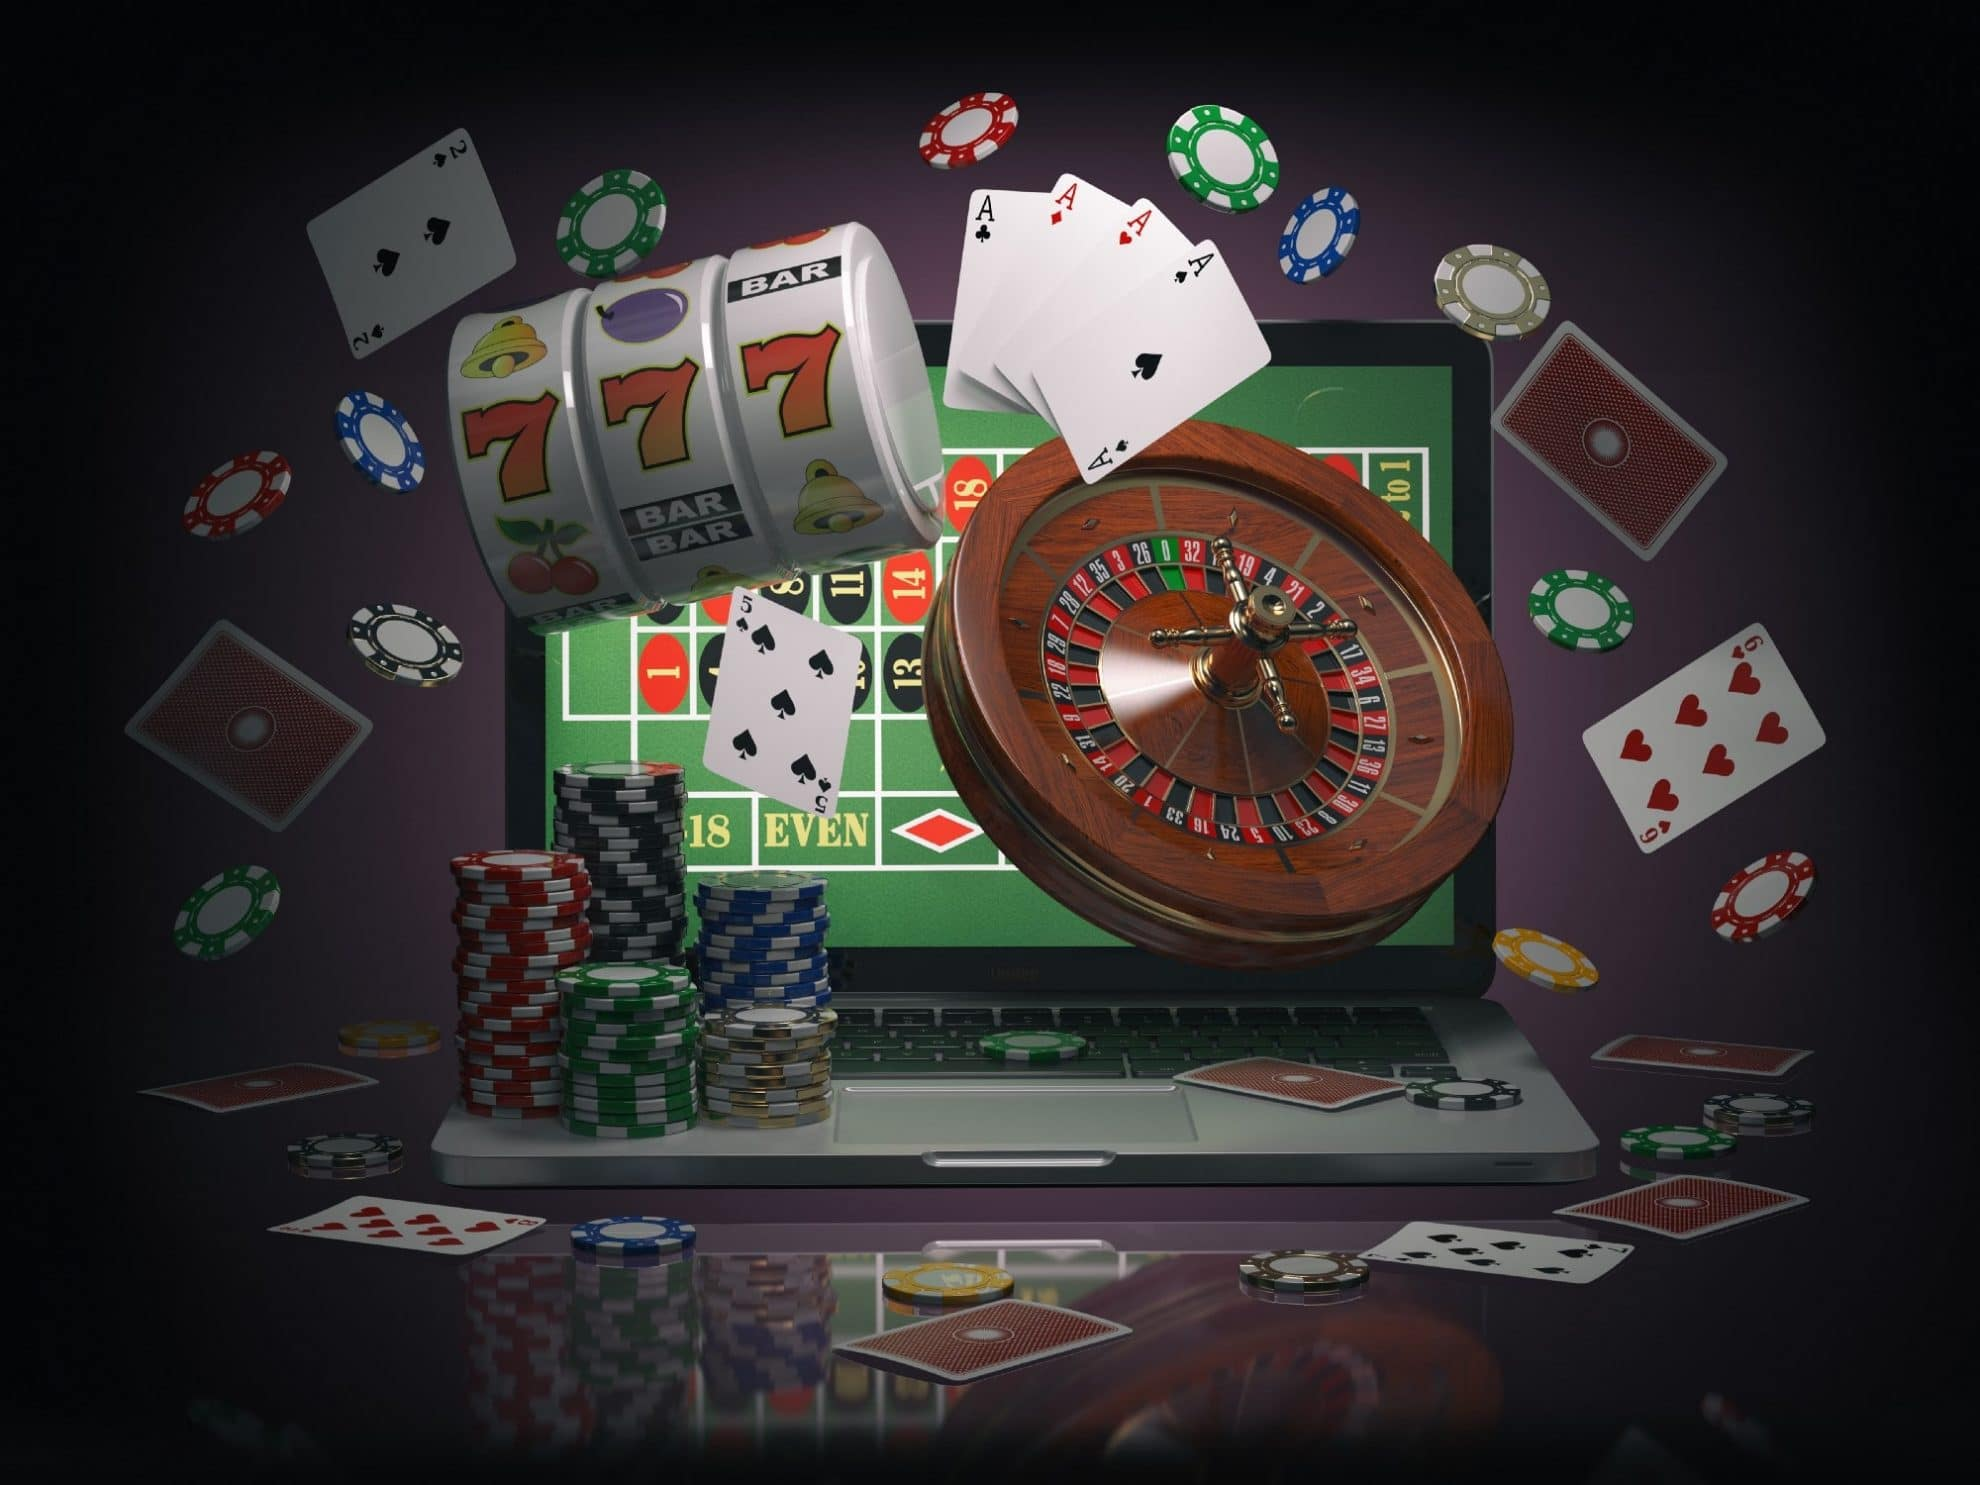 Animated Laptop Screen, Roulette Wheel, Cards, Casino Chips, Slot Reels